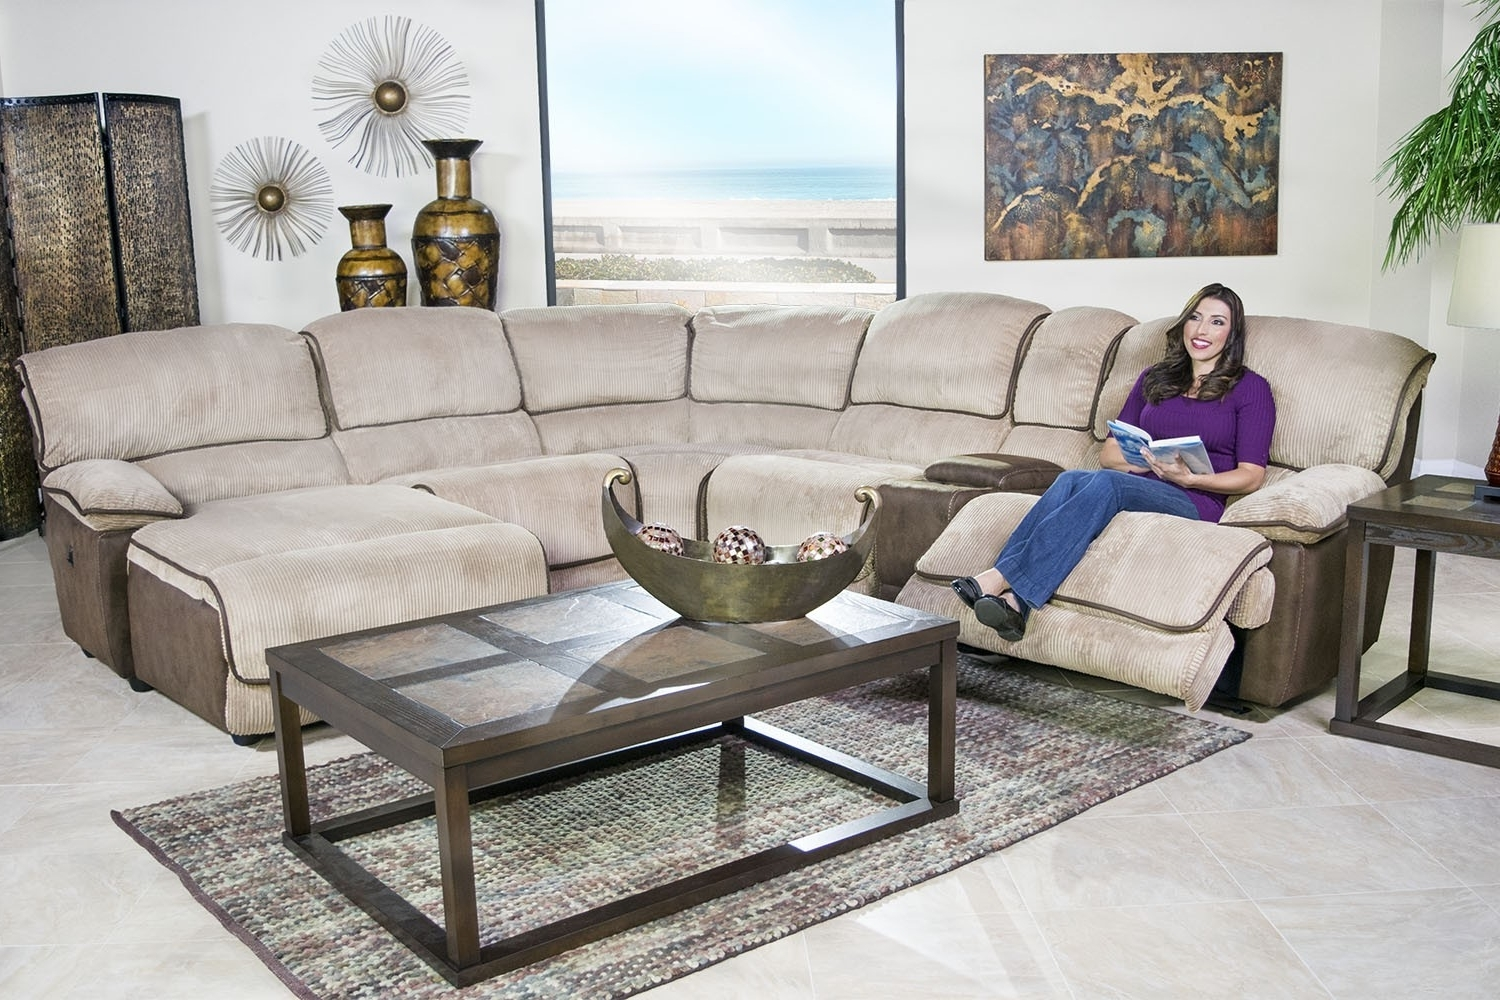 Awesome Sectional Sofa Austin – Buildsimplehome With 2018 Sectional Sofas At Austin (View 5 of 15)